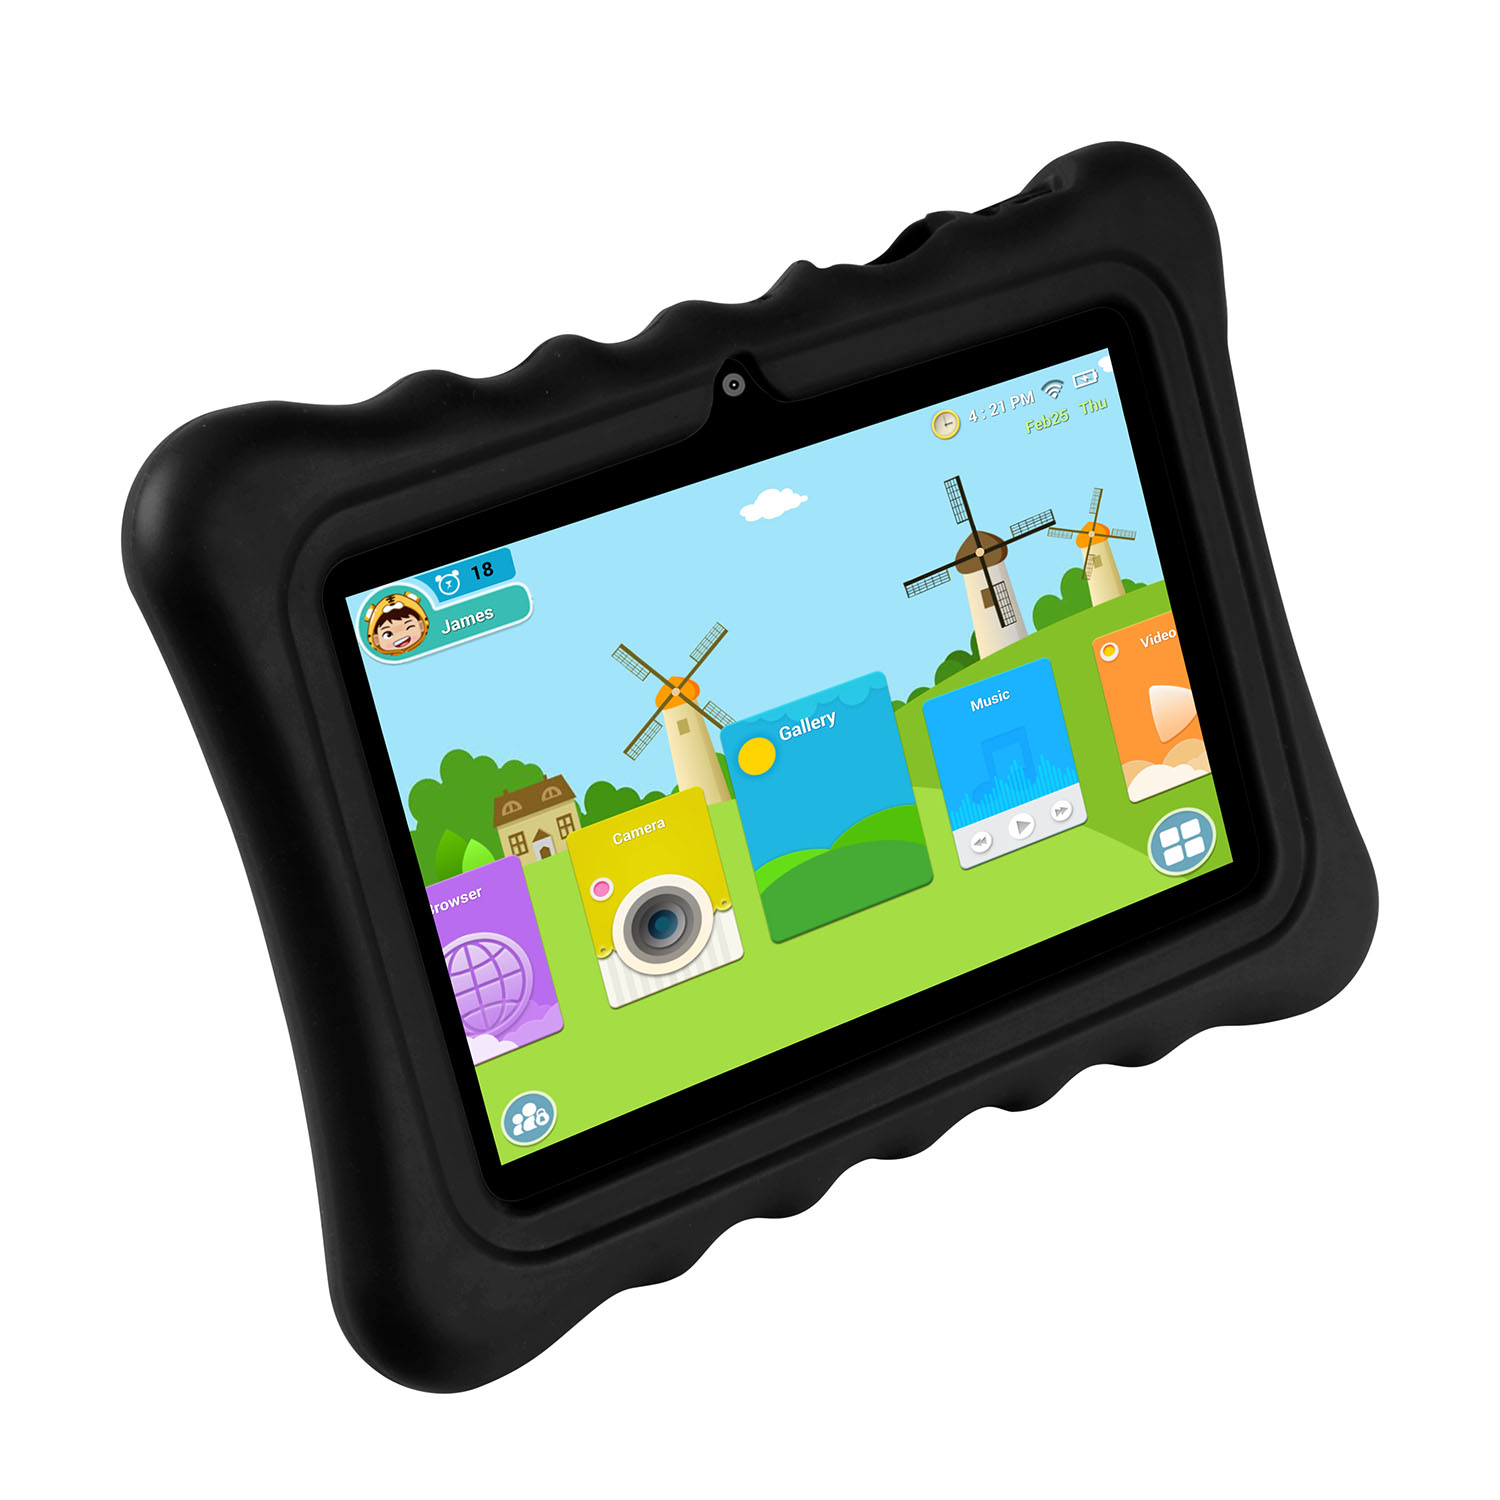 KOCASO [7 INCH] Quad Core [Android 4.4 KitKat] Kids HD Tablet PC- 8GB Storage W/ 32GB Expandable Memory, 1024x600, Dual Camera, WiFi/Wireless, Micro USB/SD Card Slot - Black